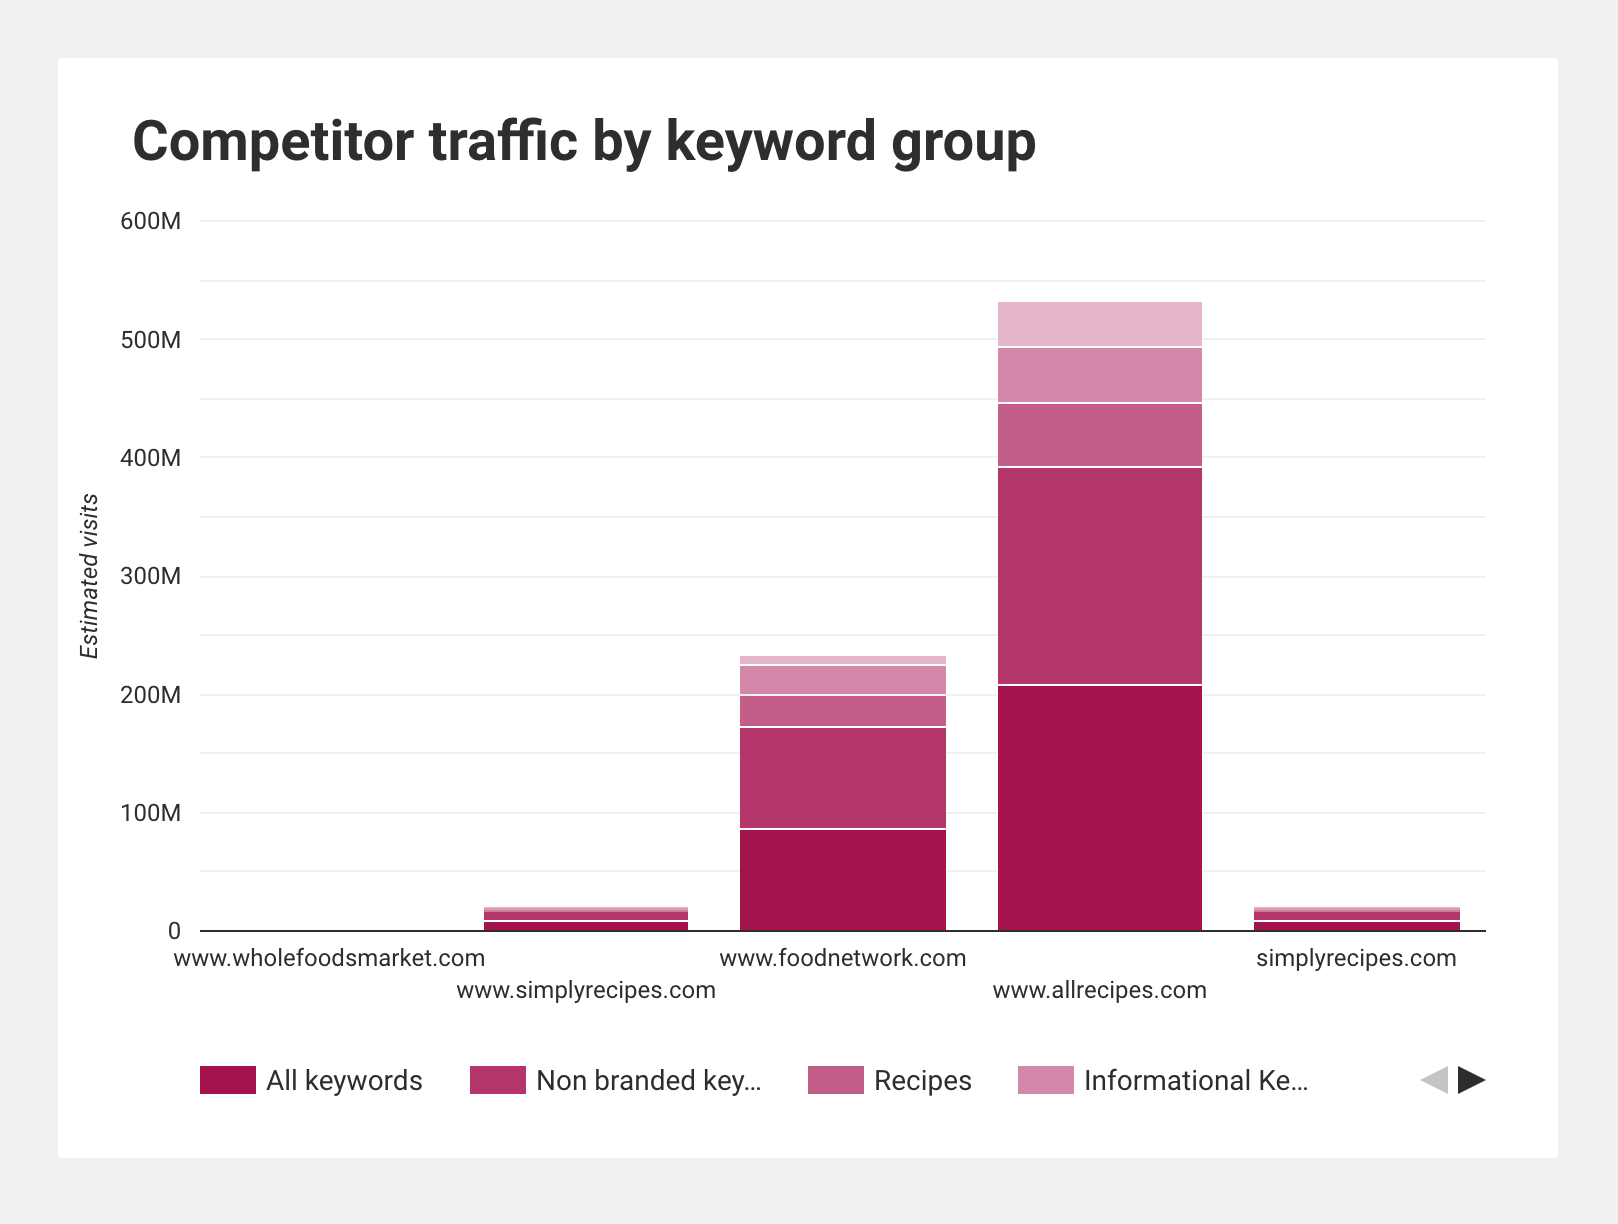 Chart showing estimated visits for competitors by keyword group.